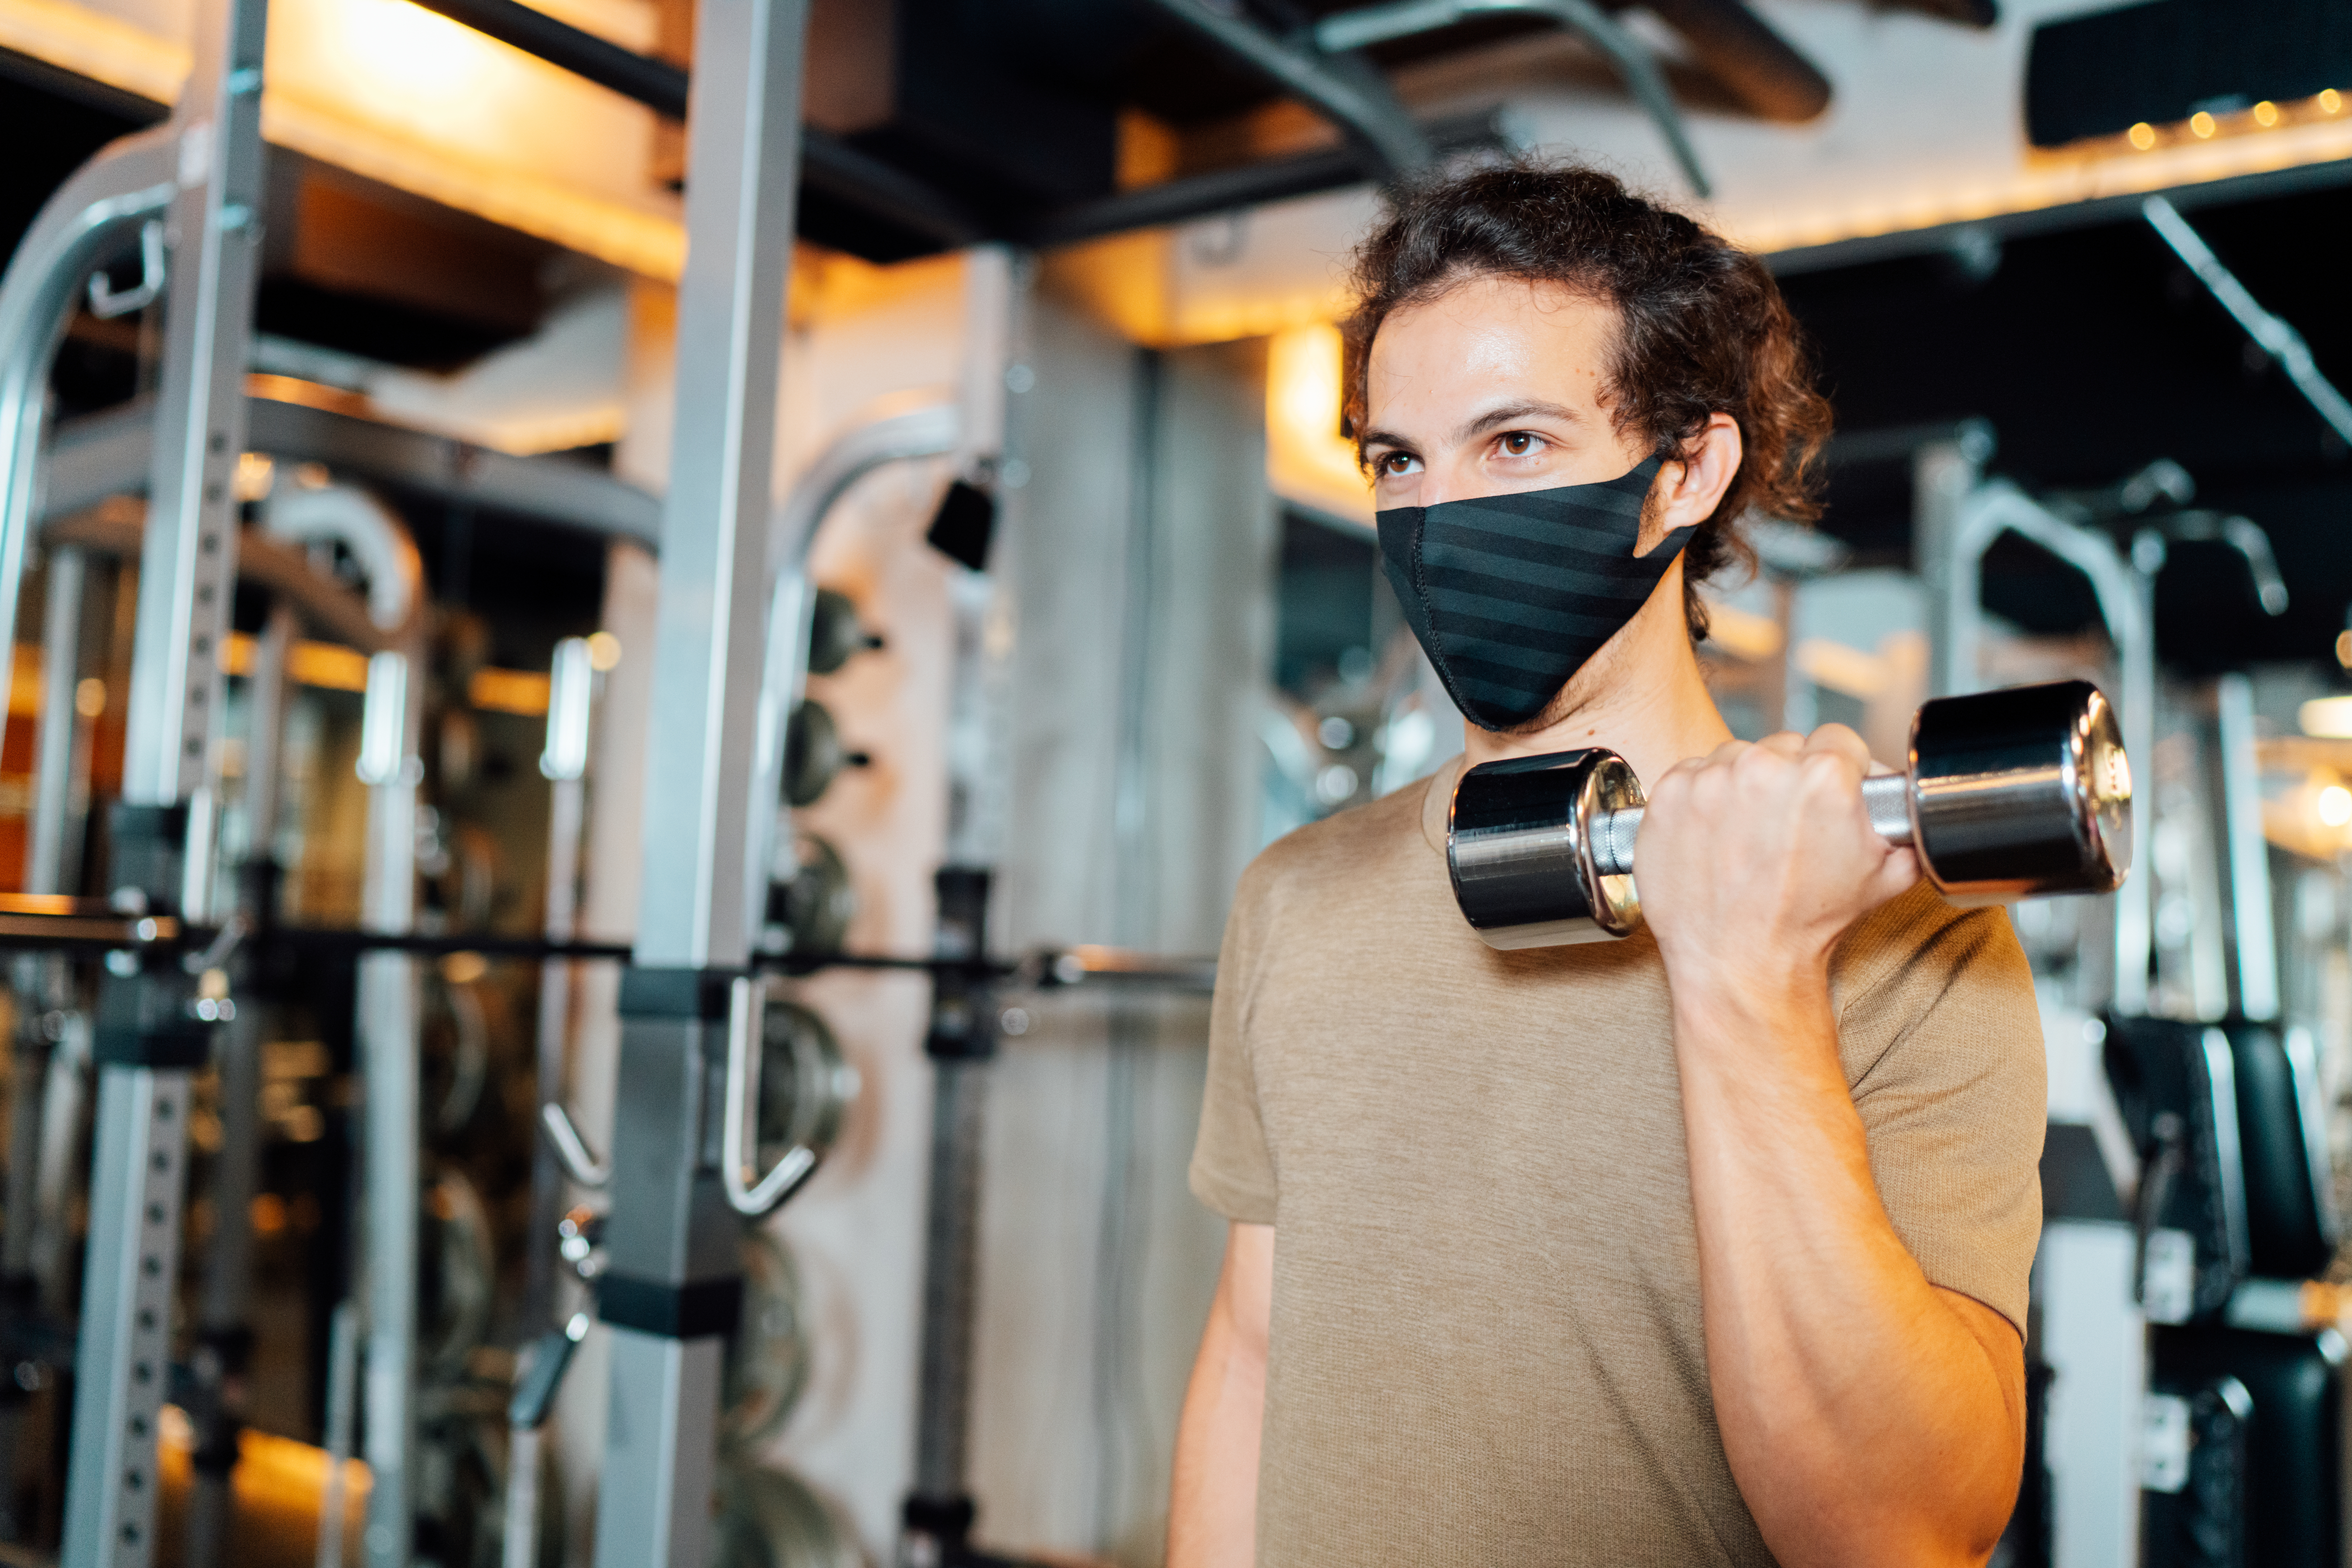 Heading back to the gym? Read this first